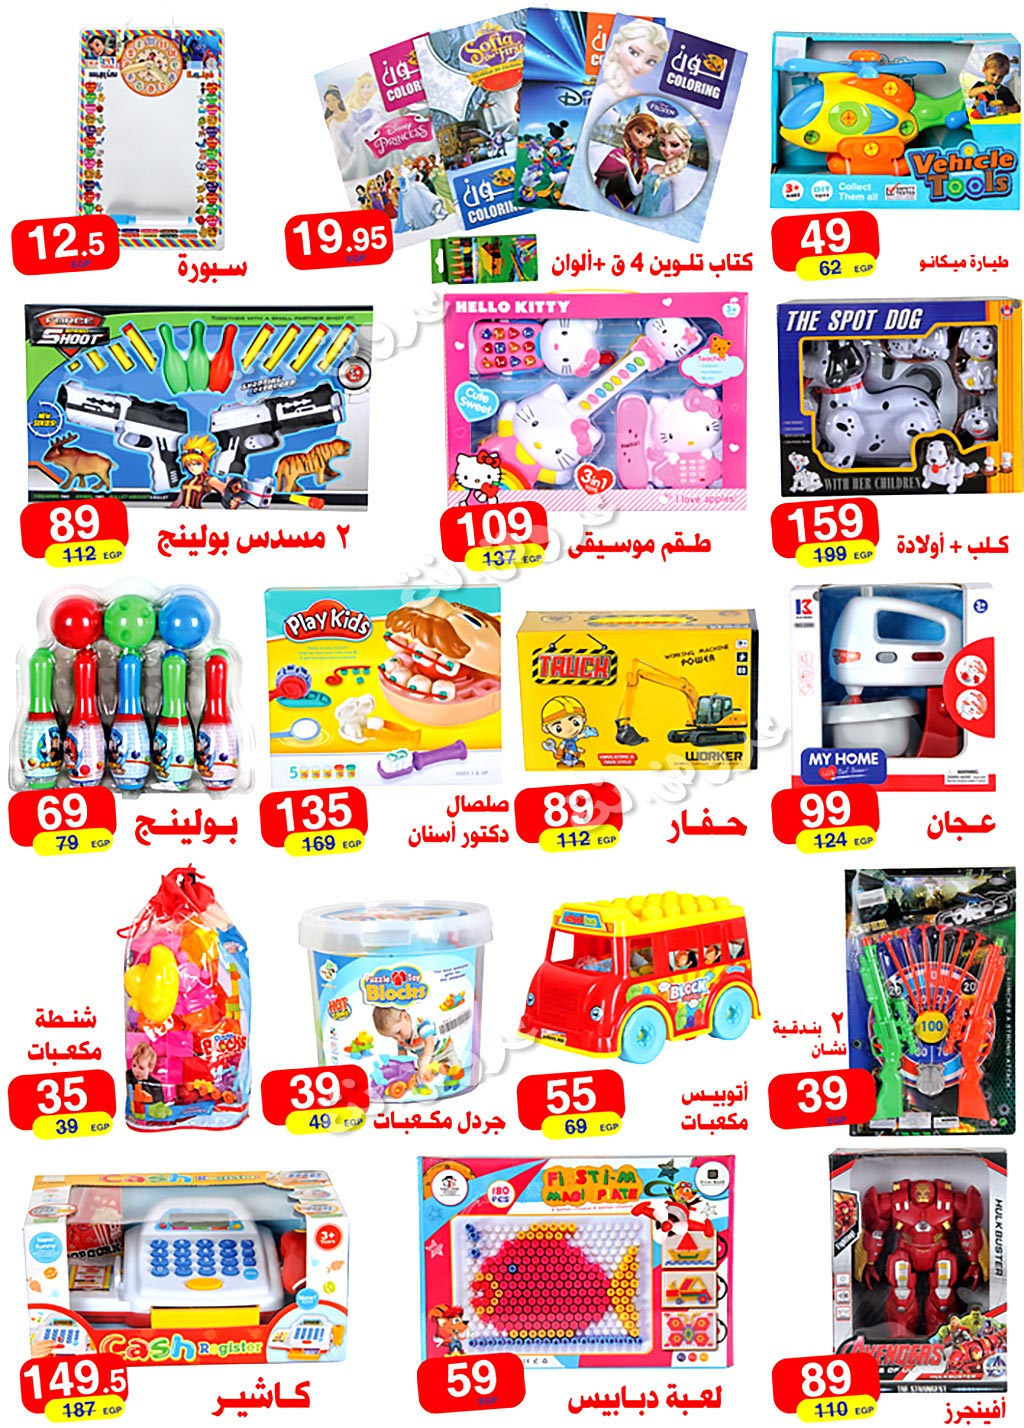 almorshedy offers from 16sep to 30sep 2020 page number 41 عروض أسواق المرشدى من 16 سبتمبر حتى 30 سبتمبر 2020 صفحة رقم 41